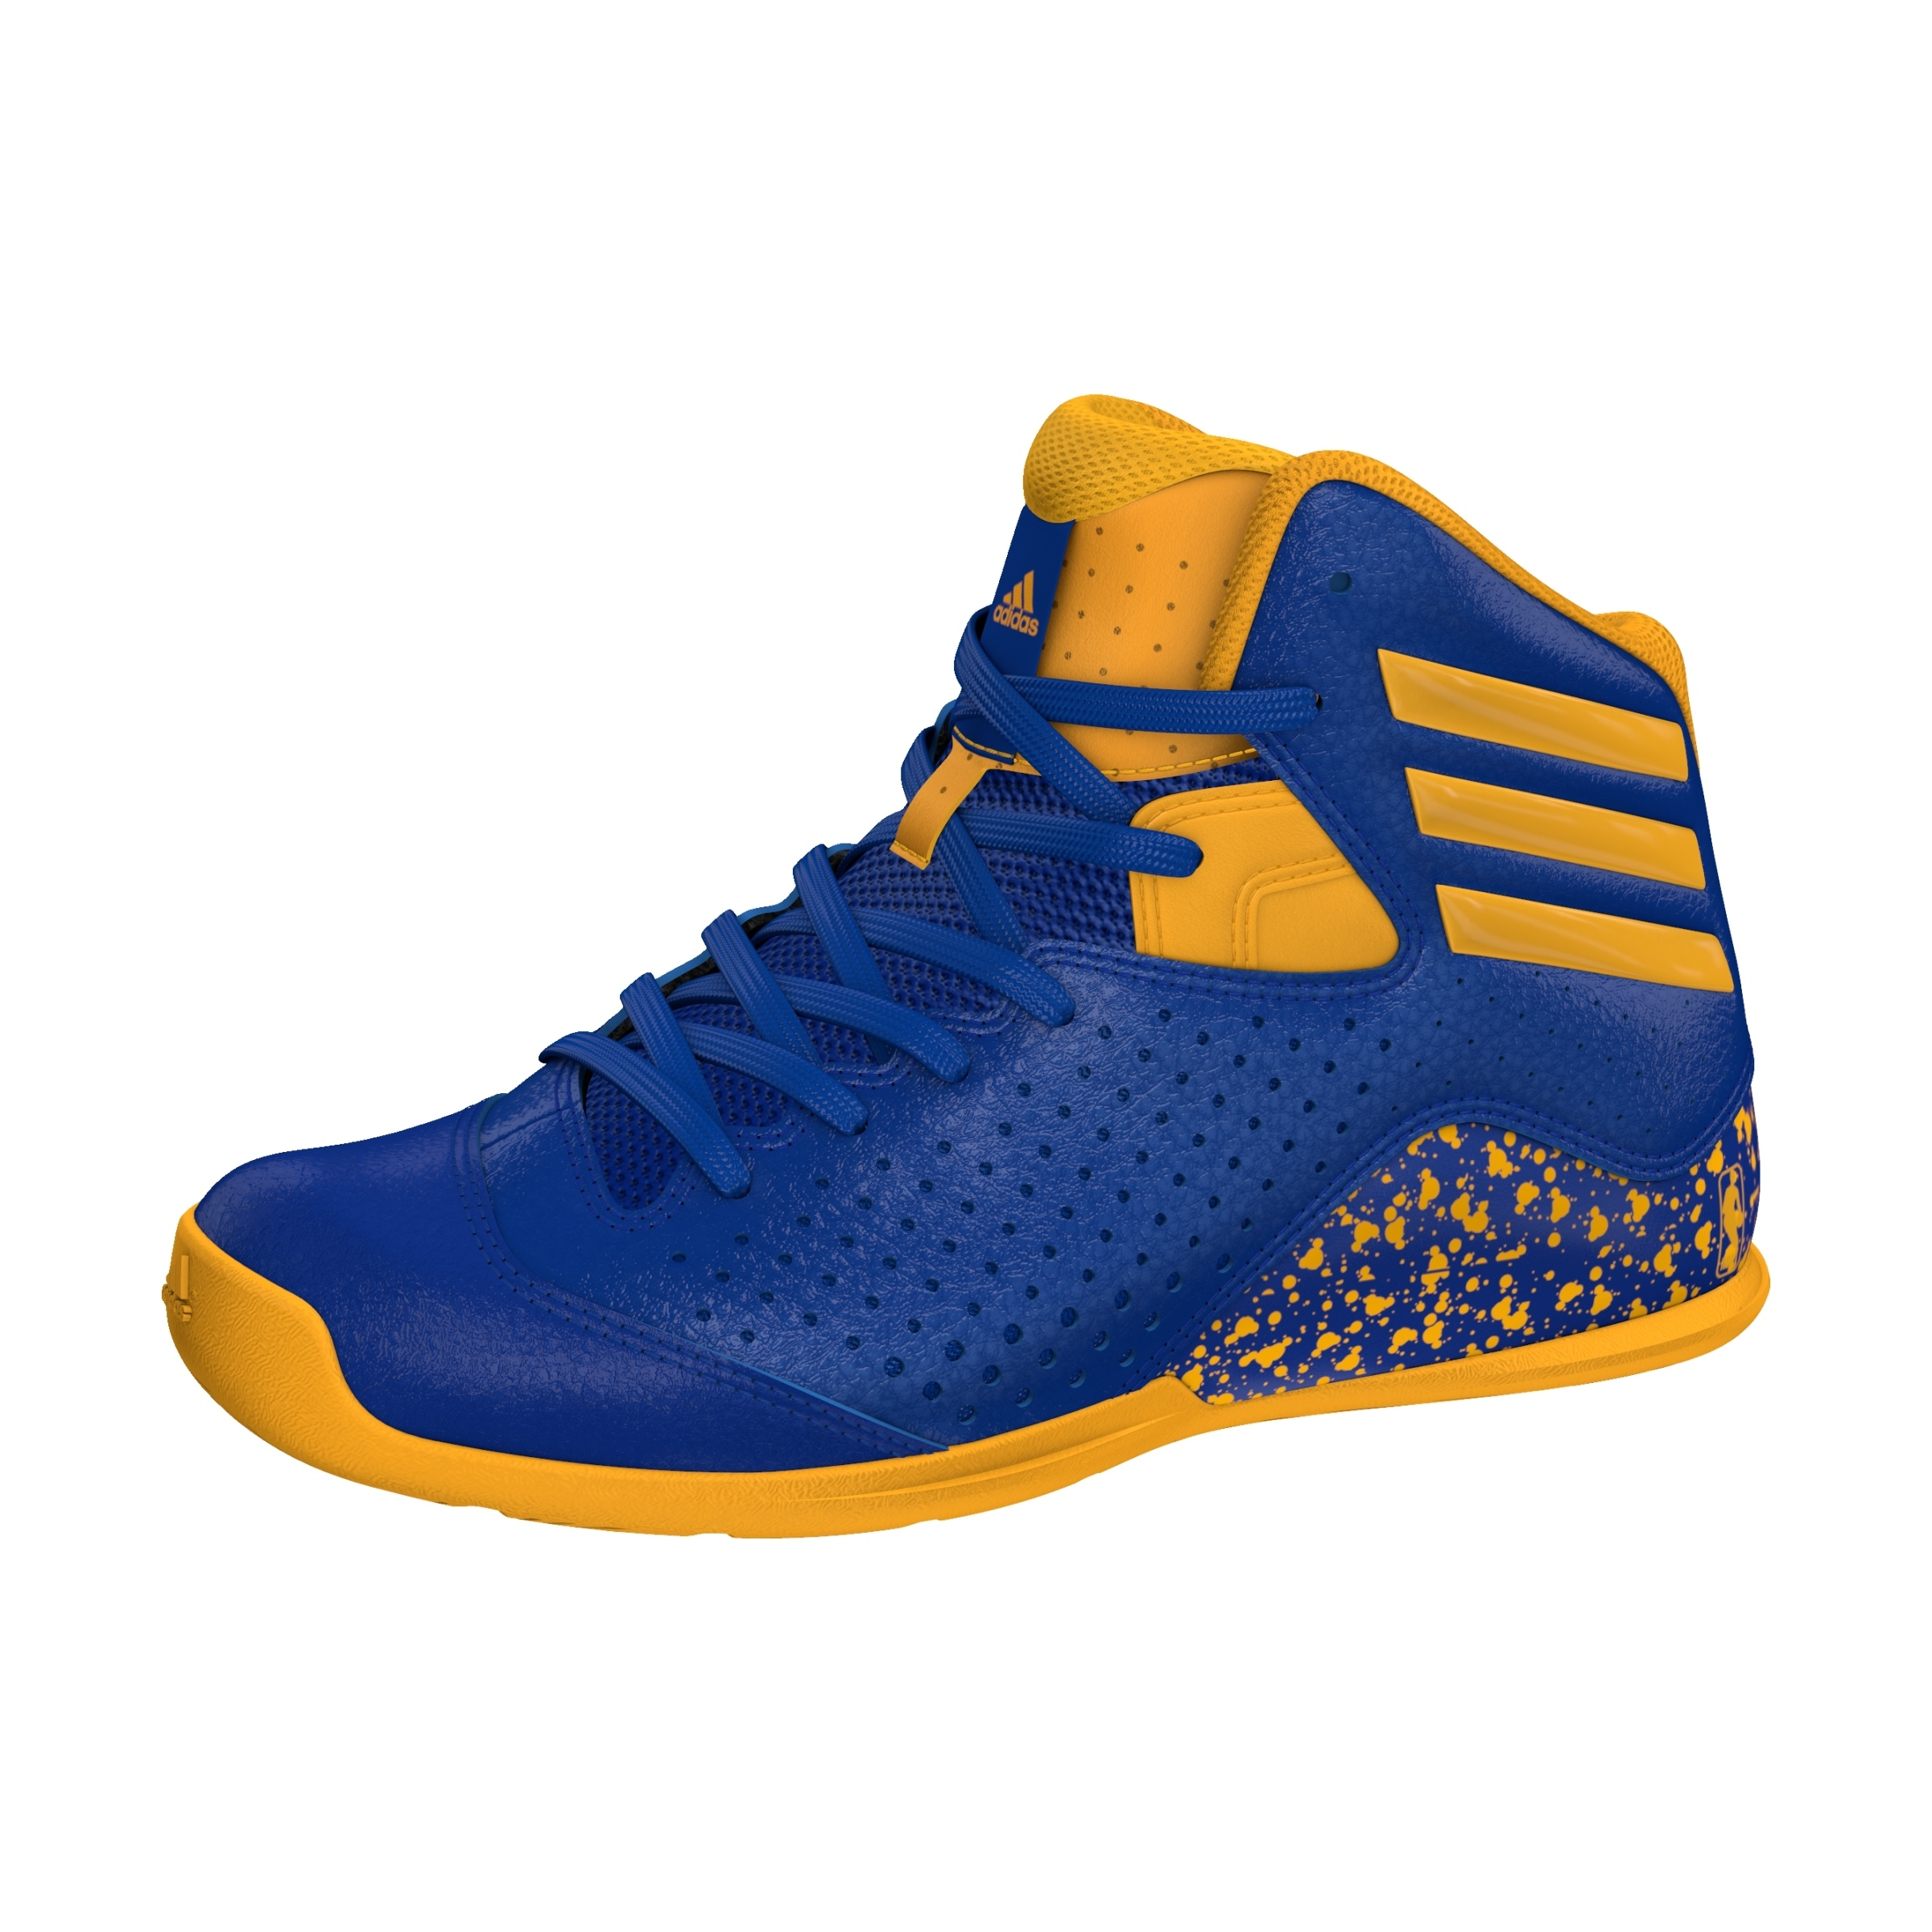 Derrick rose shoes 773 blue